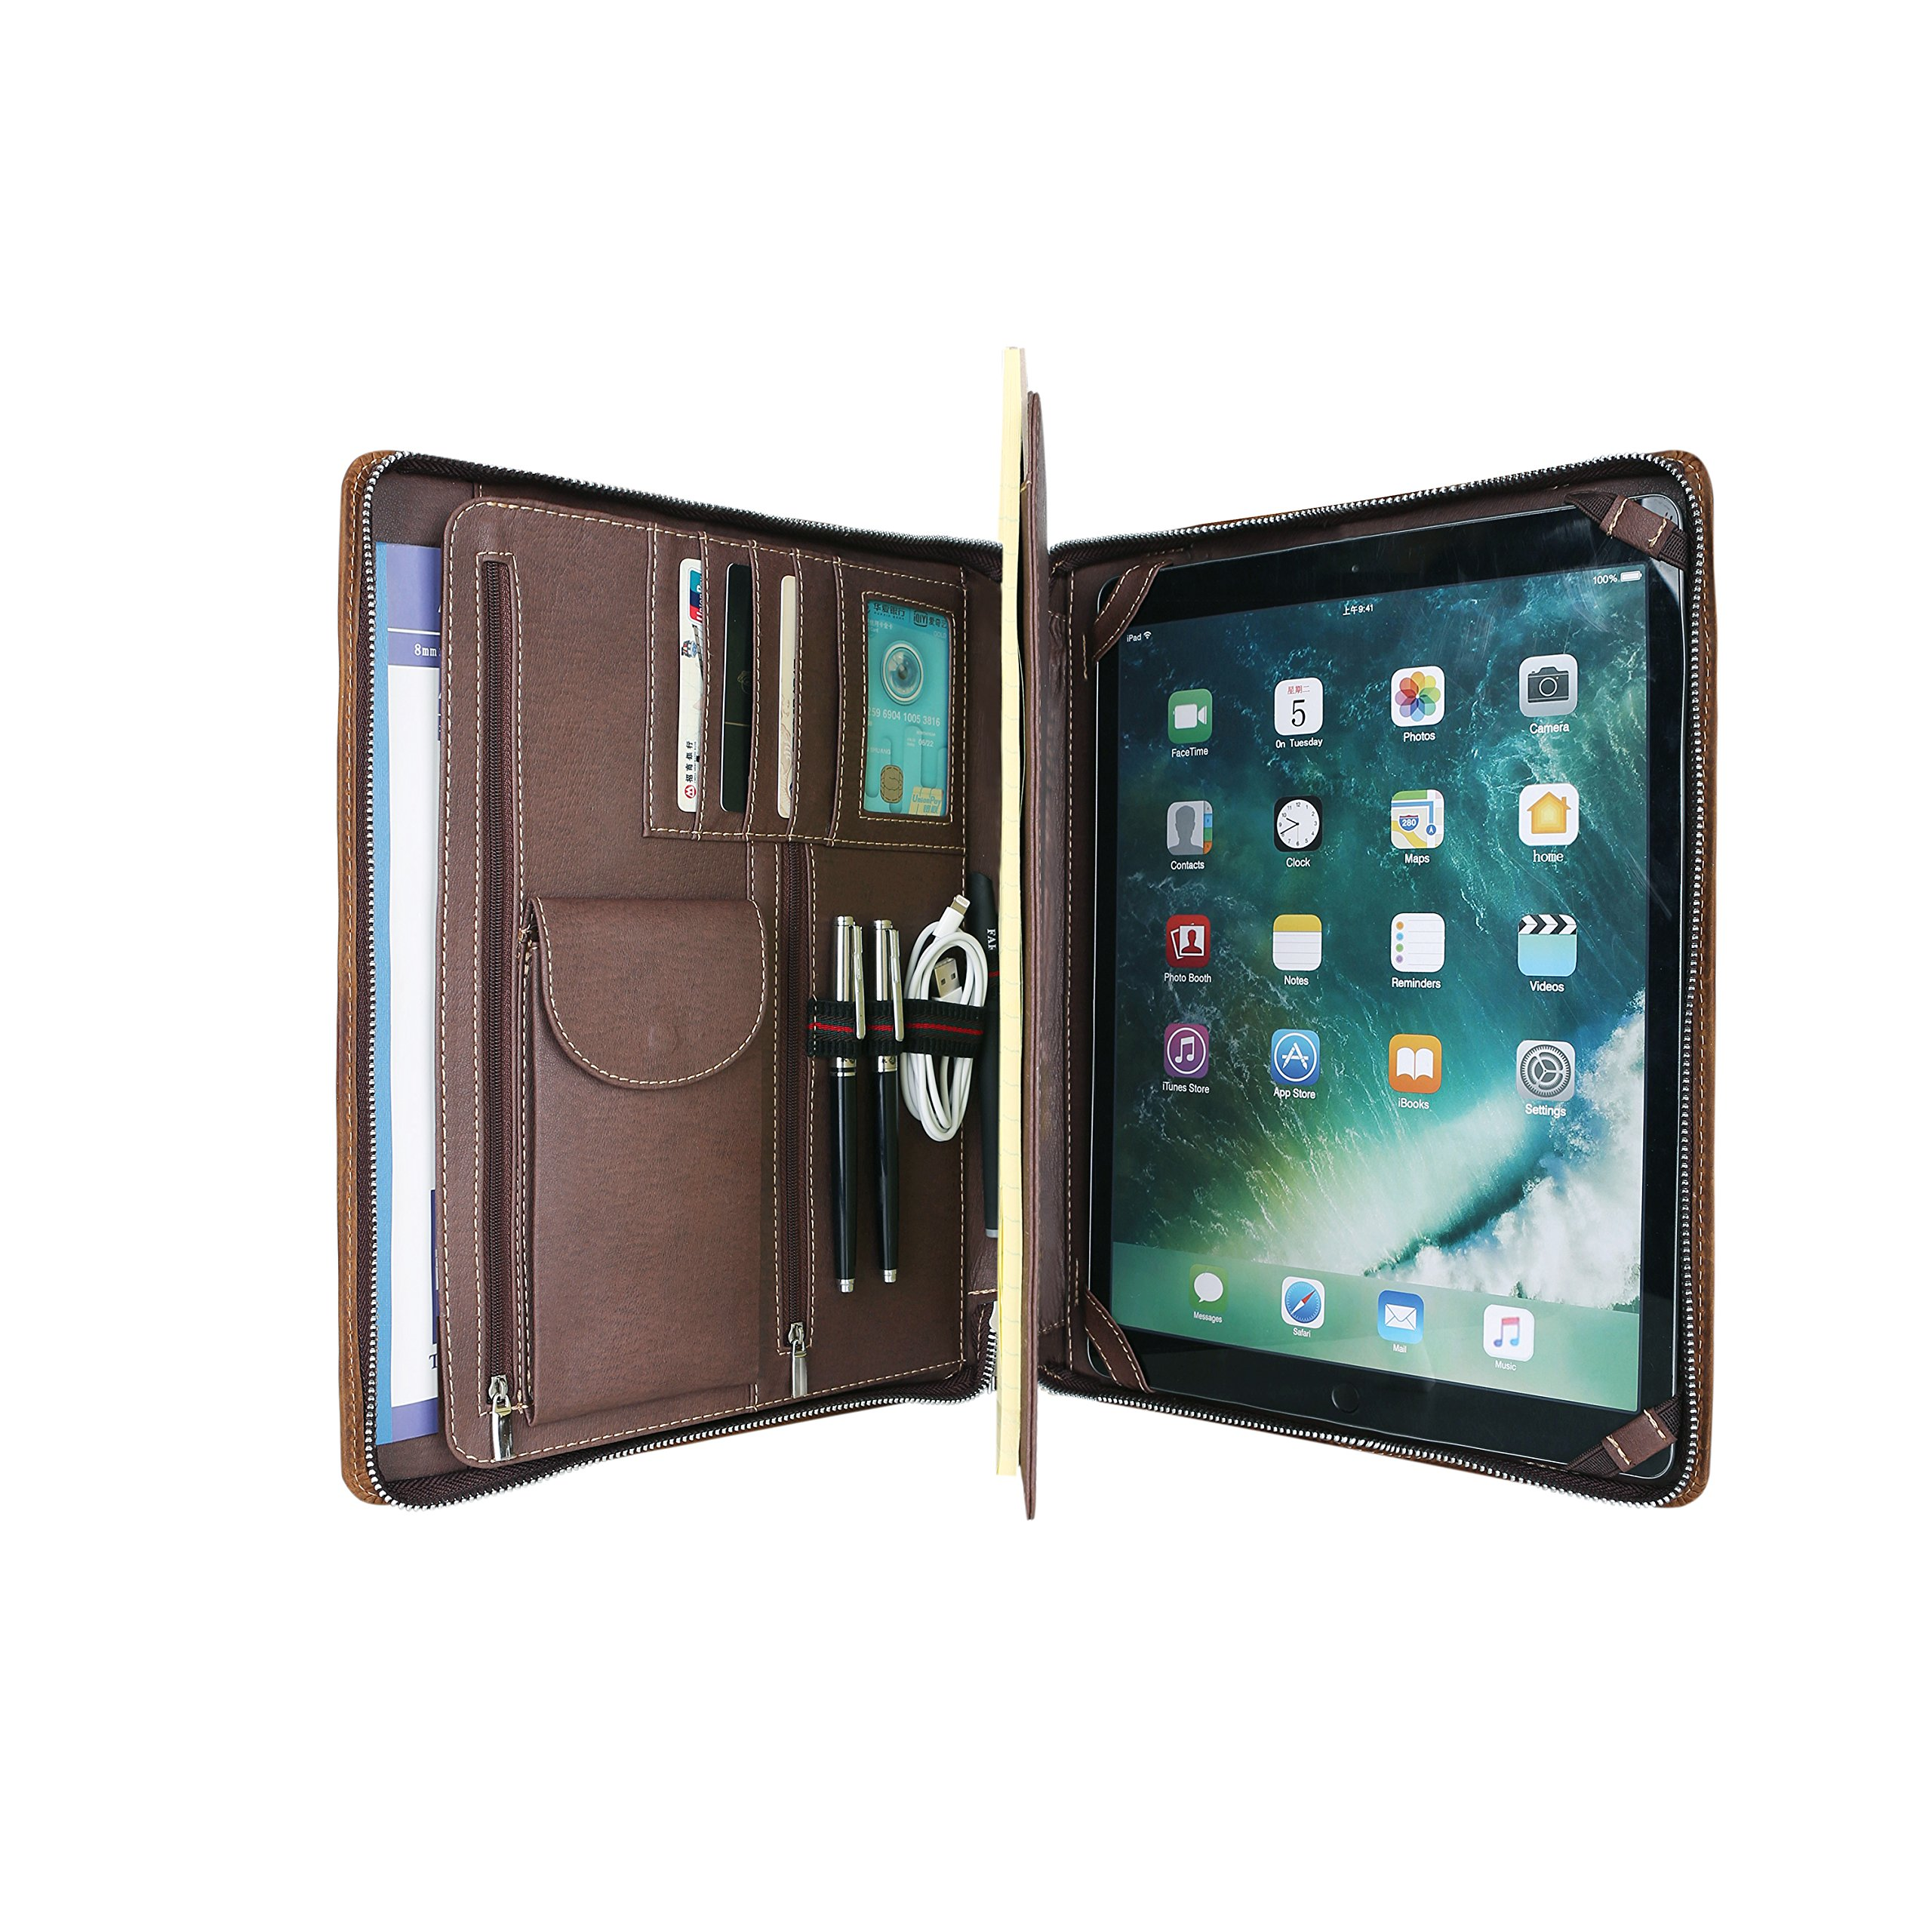 Premium Genuine Leather Business Portfolio/Padfolio with Zippered Closure and Interior iPad Pro 10.5 inch Tablet Sleeve